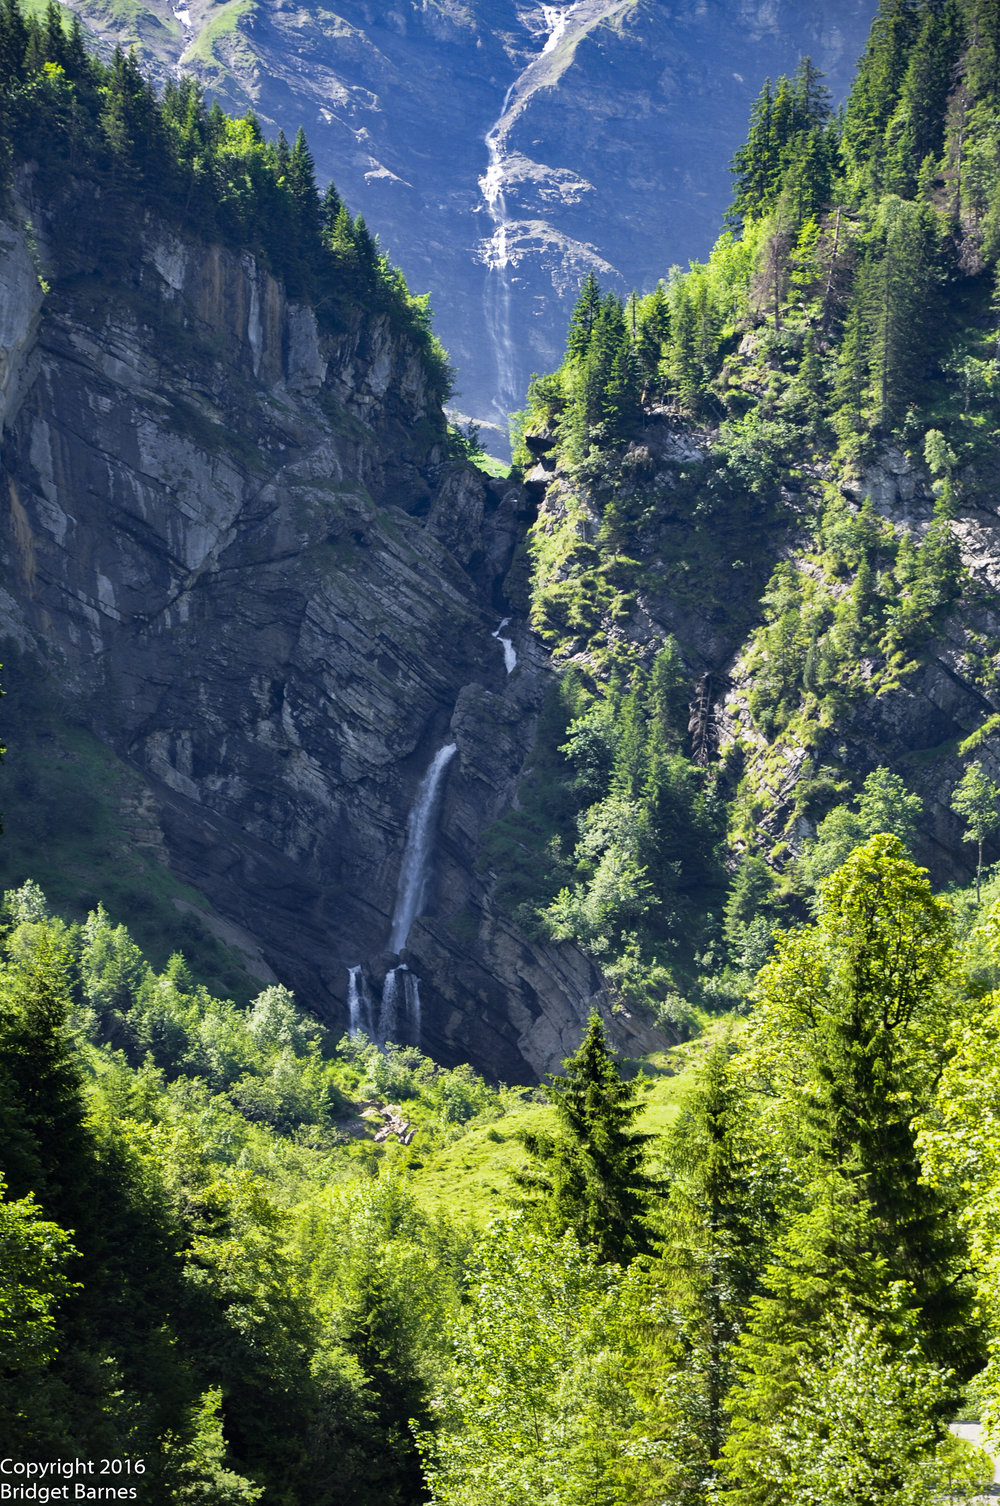 Waterfalls in Saxeten